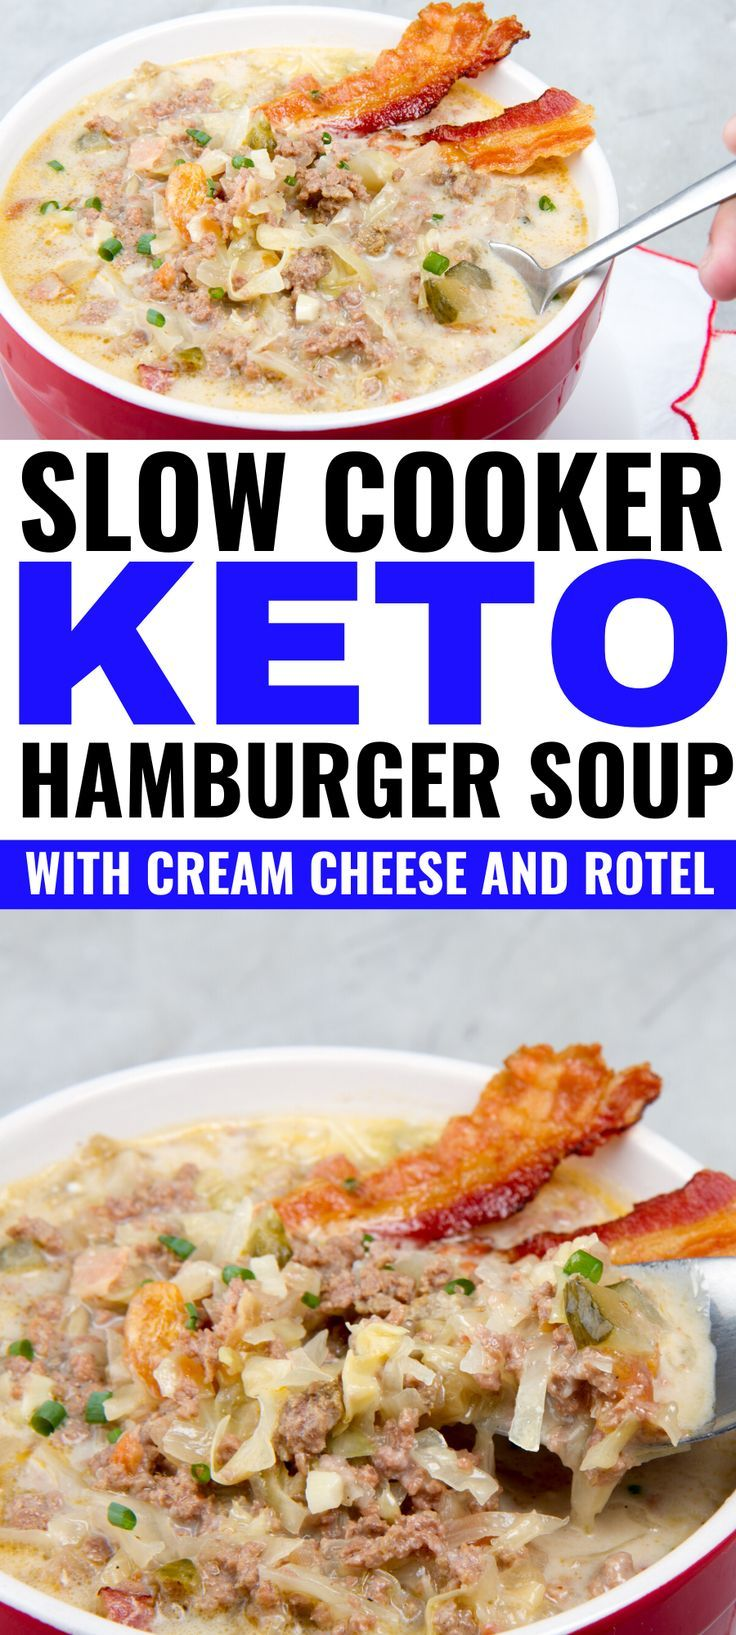 Slow Cooker Keto Hamburger Soup With Cream Cheese And Rotel Recipe Hamburger Soup Soup With Ground Beef Healthy Recipes